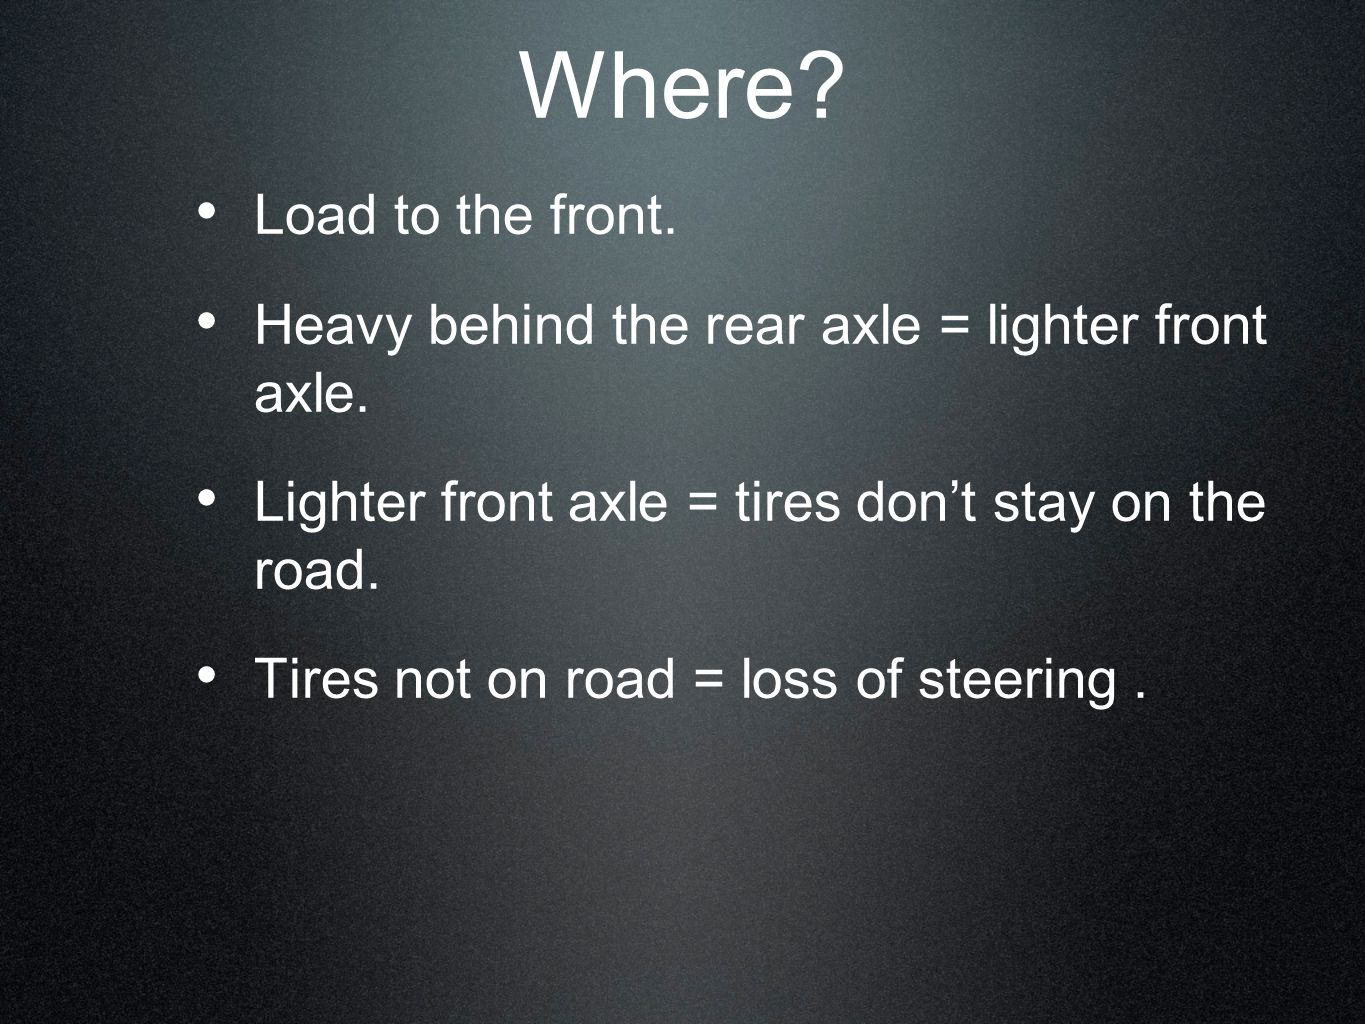 Load to the front. Heavy behind the rear axle = lighter front axle. Lighter front axle = tires dont stay on the road. Tires not on road = loss of stee